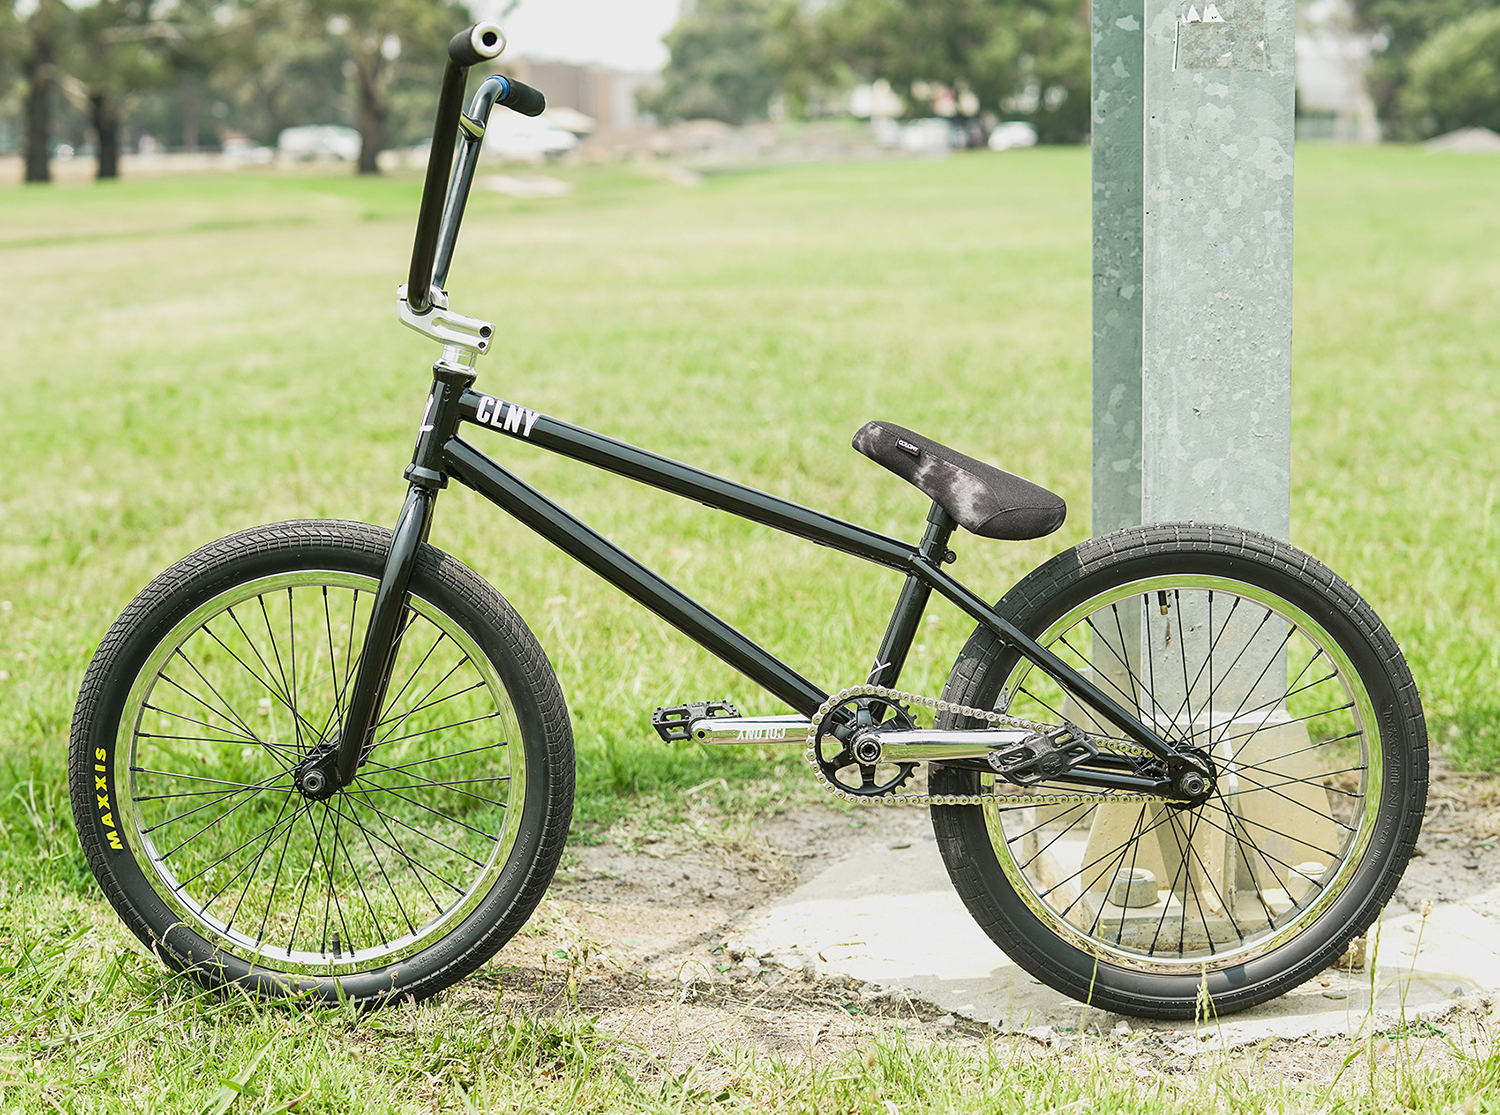 Jake Wallwork bike check